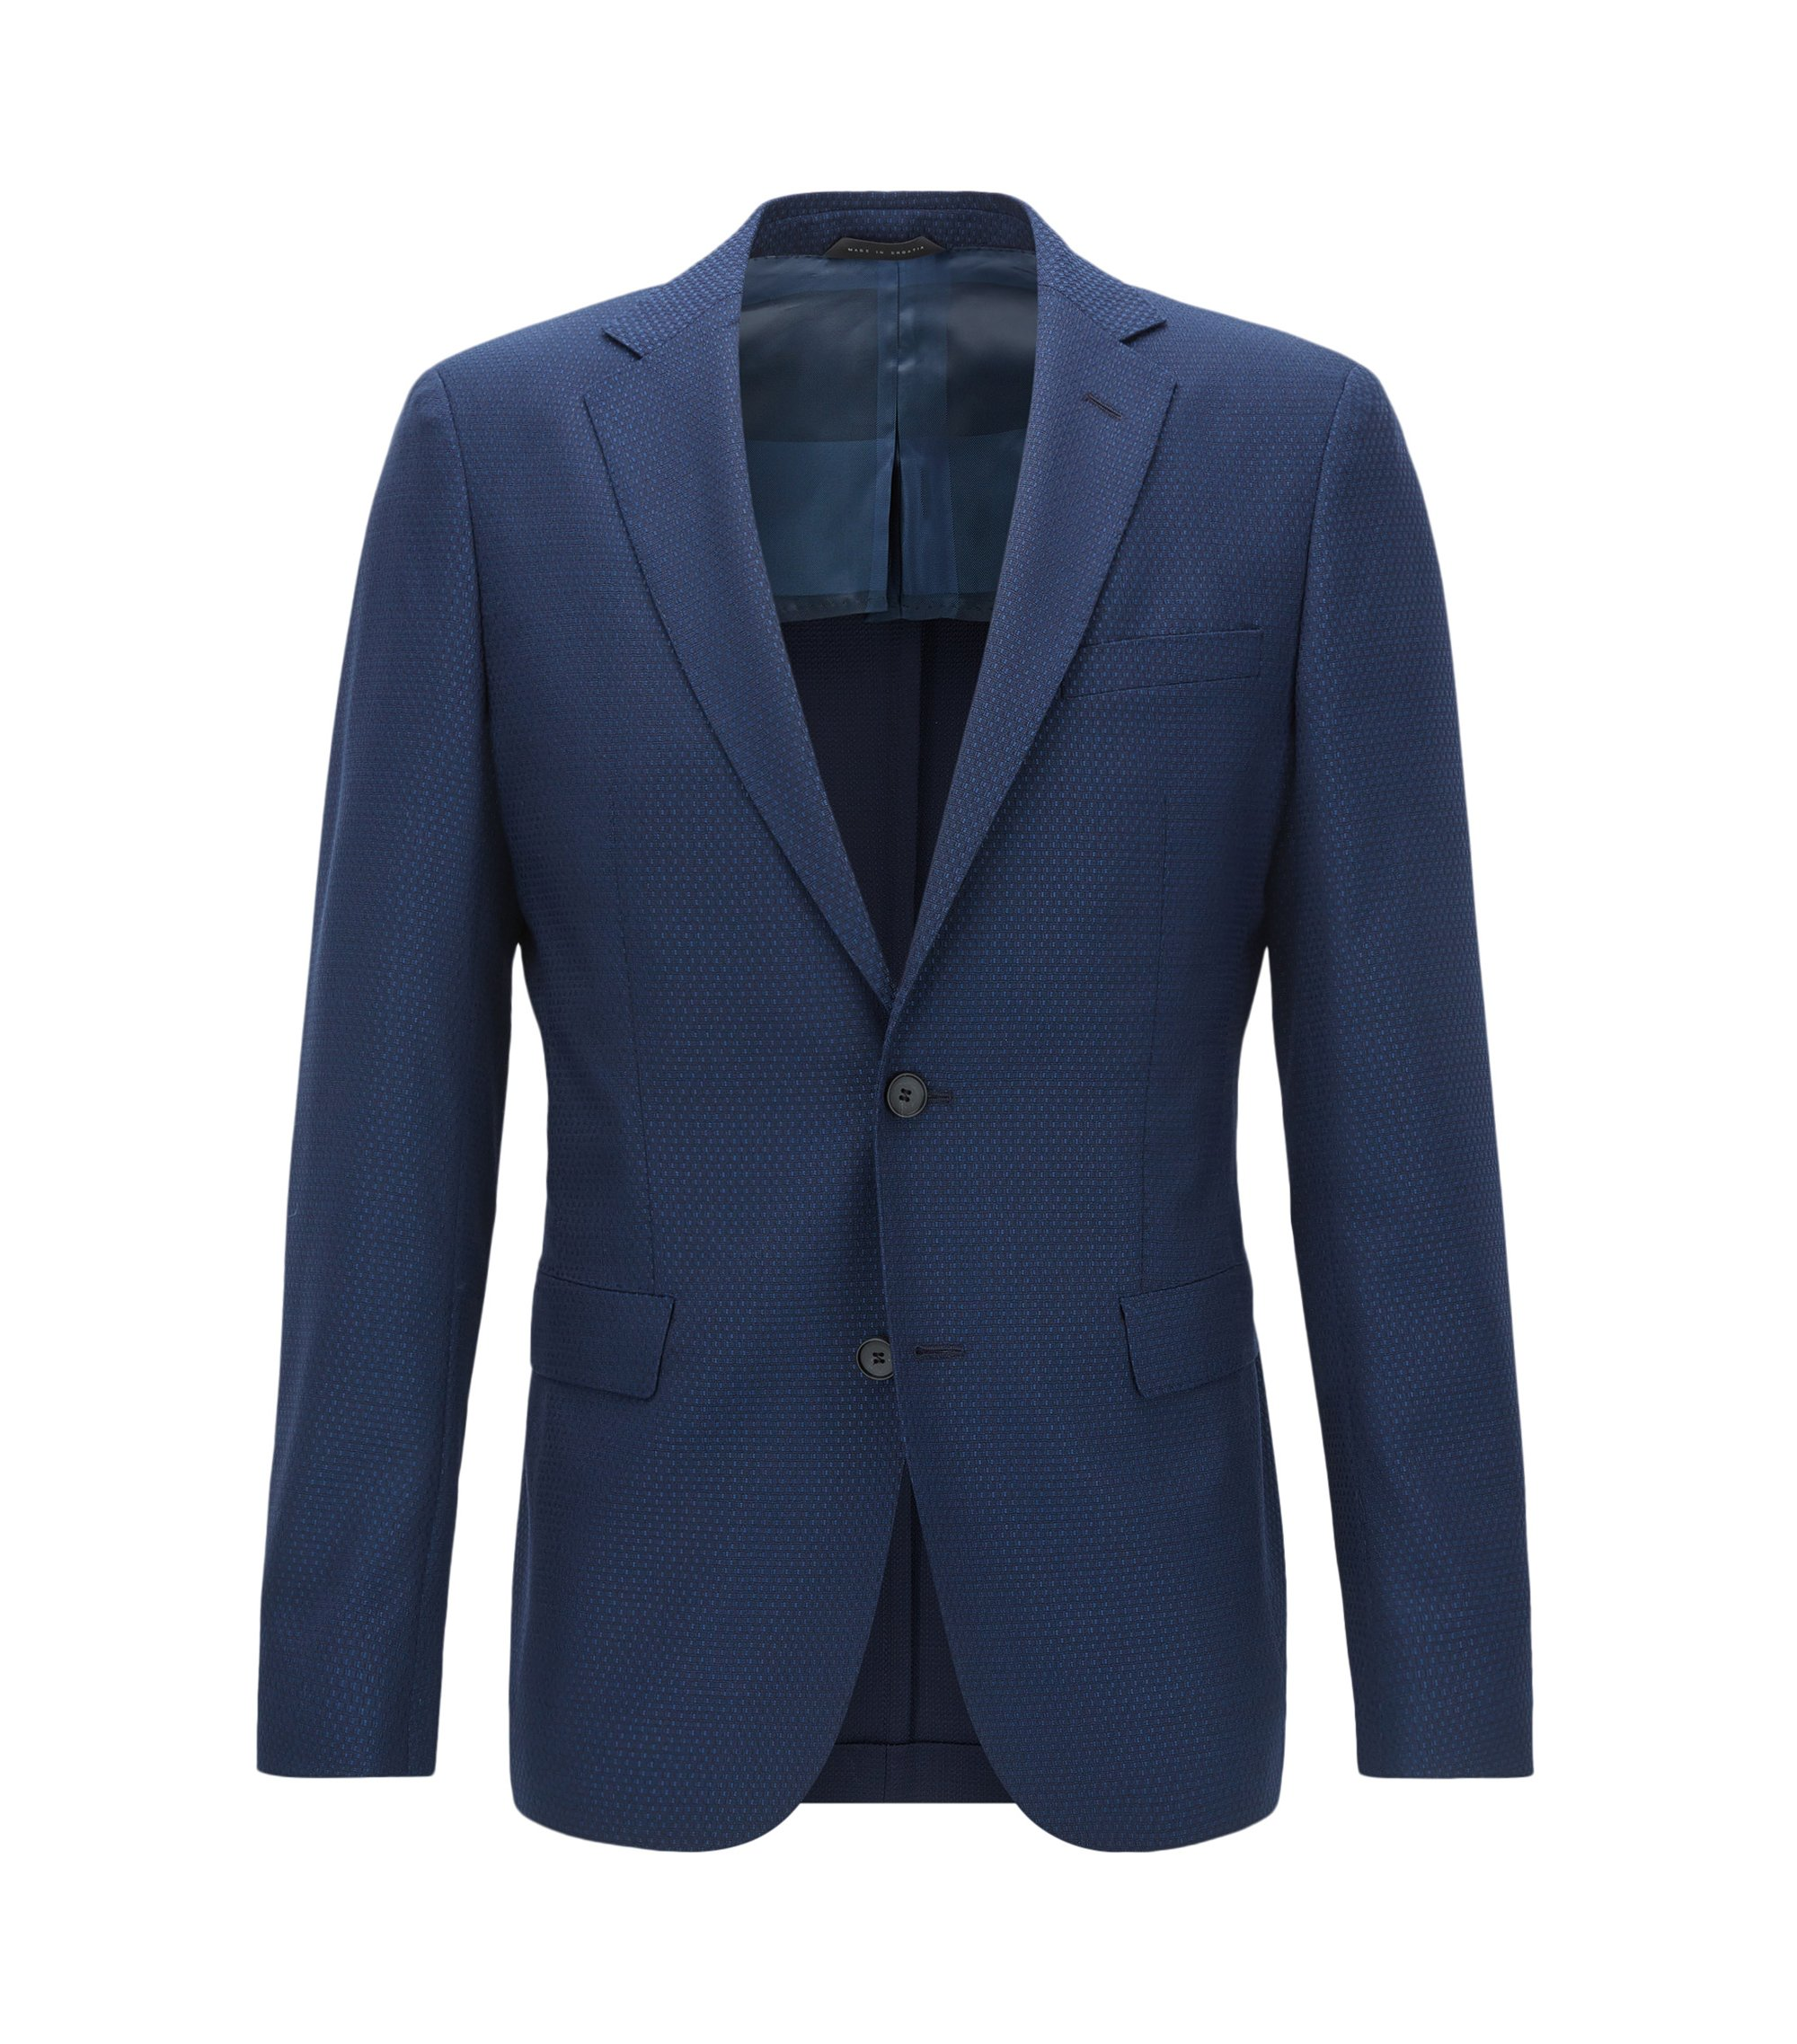 Basketweave Virgin Wool Sport Coat, Extra Slim Fit | Roan, Dark Blue